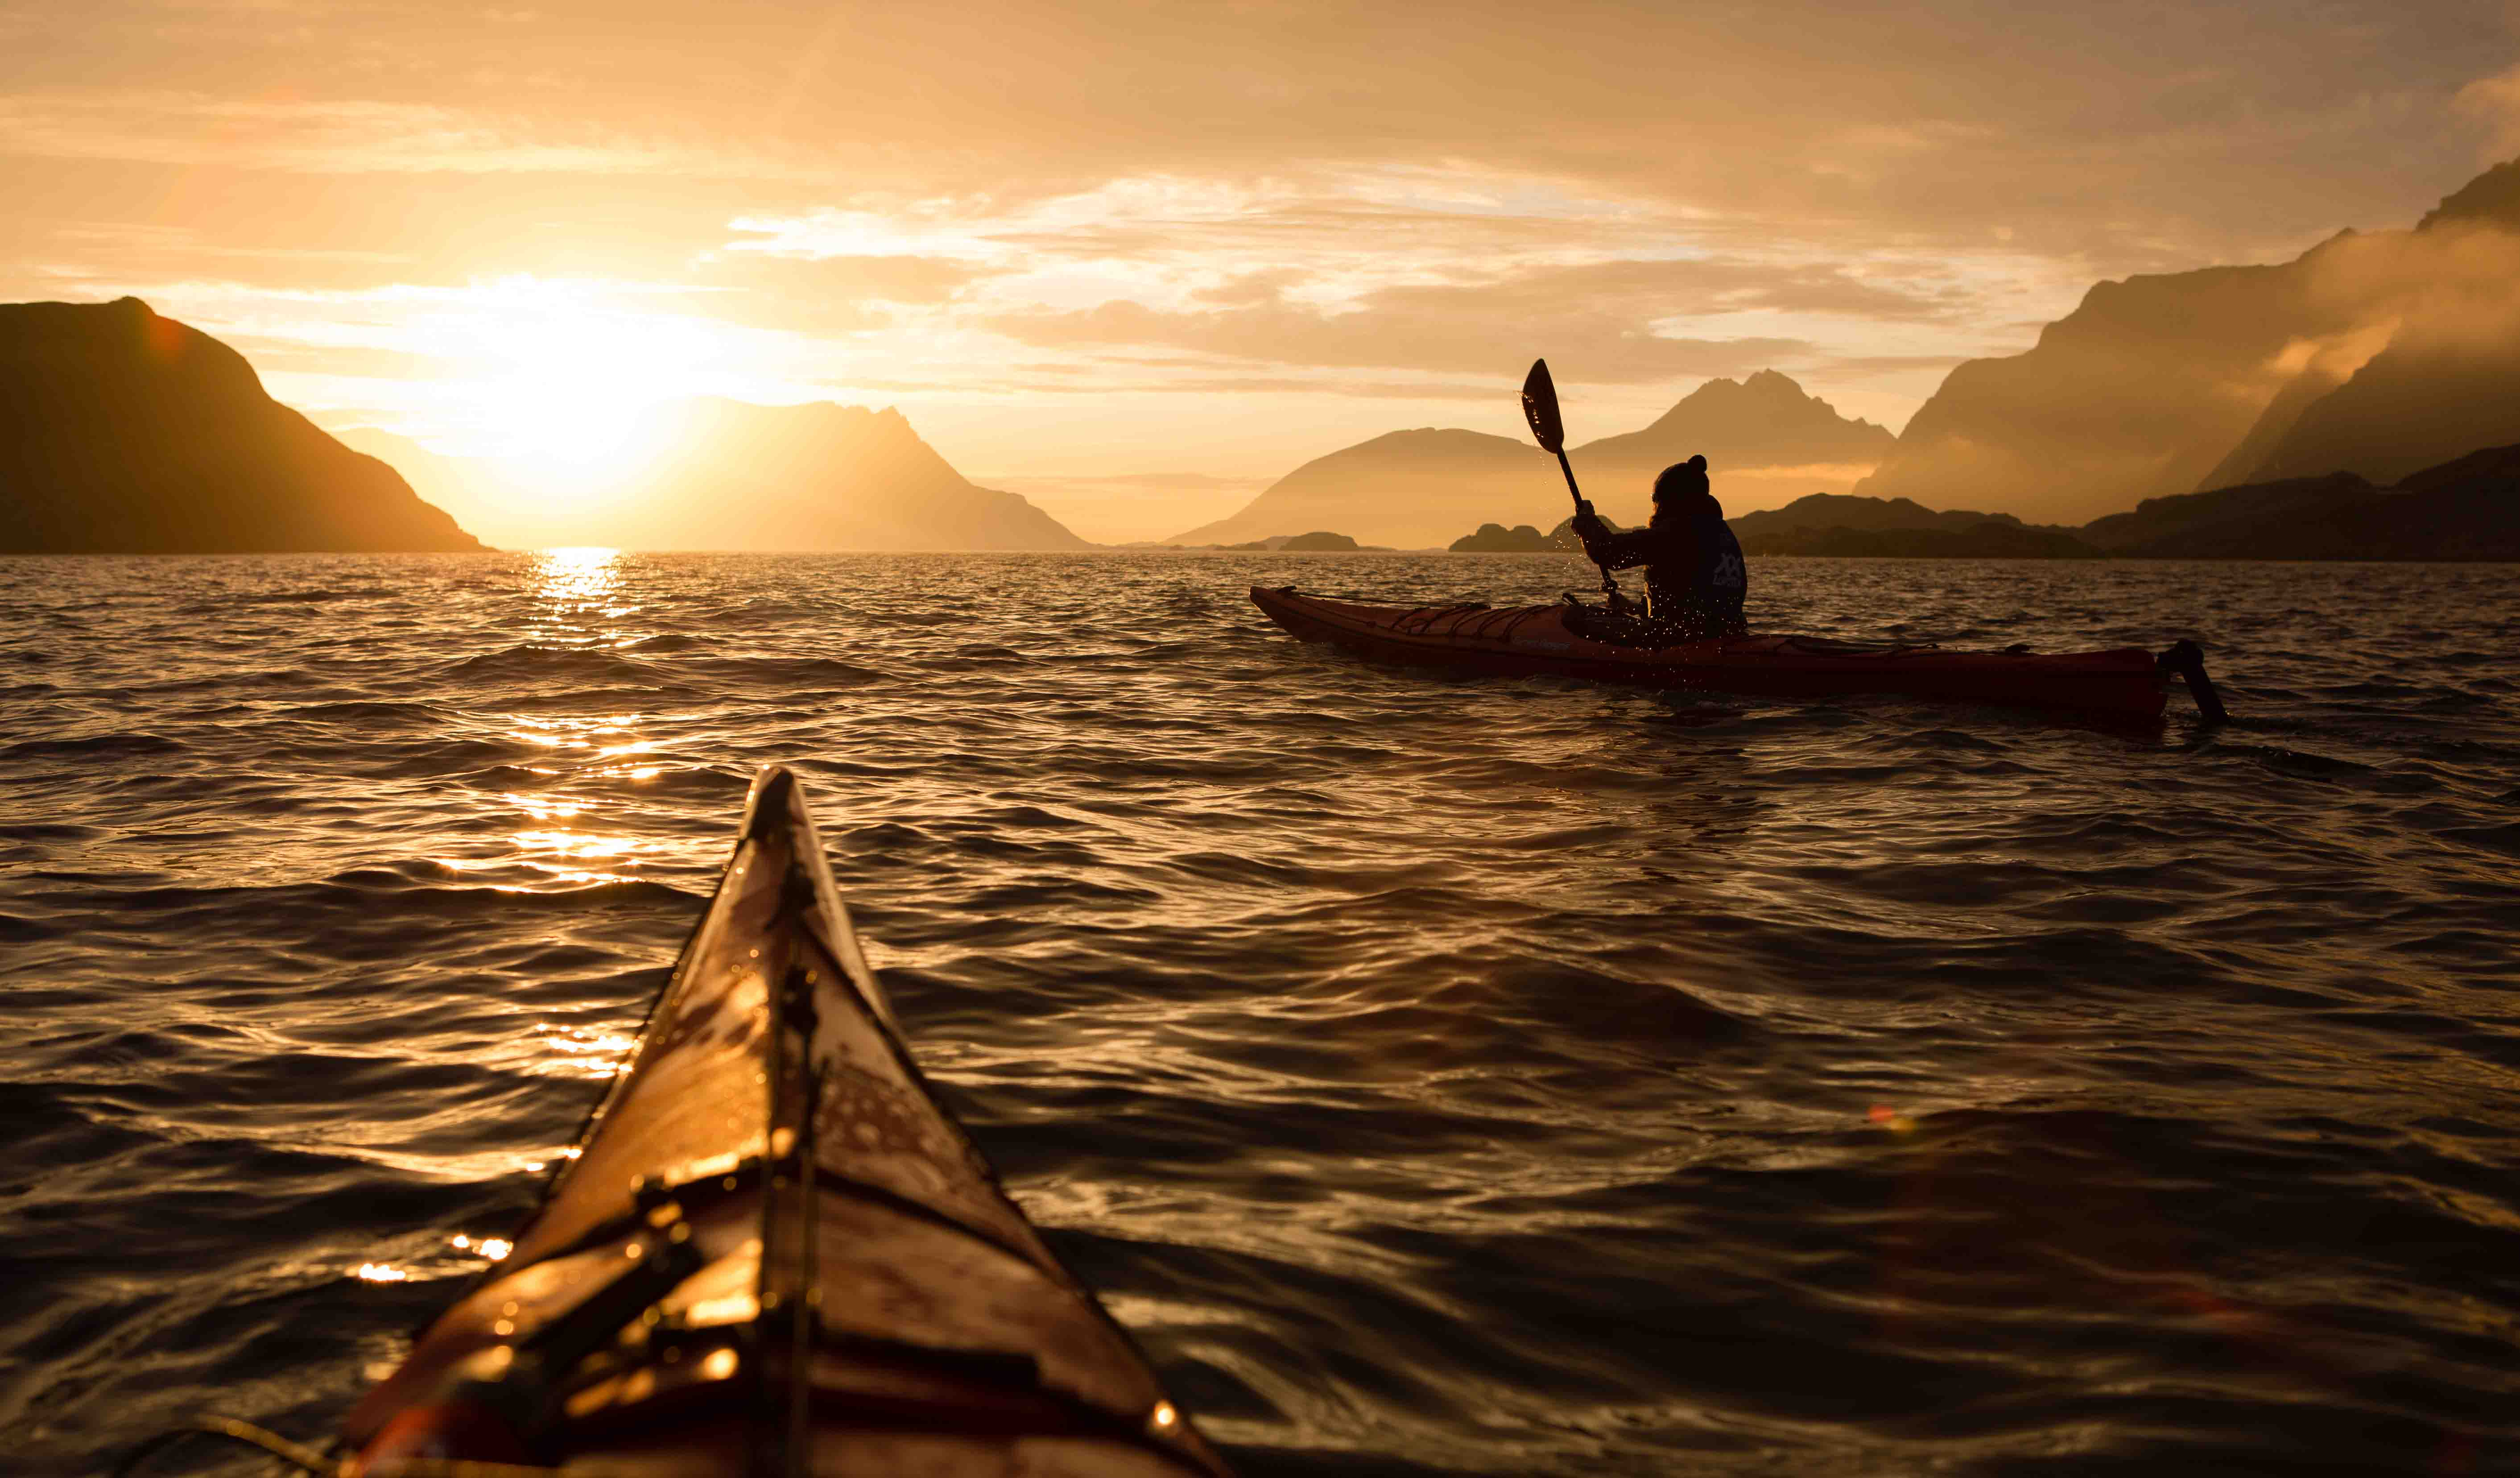 Two kayakers below the midnight sun on the coastline of Vestvågøy, Lofoten.